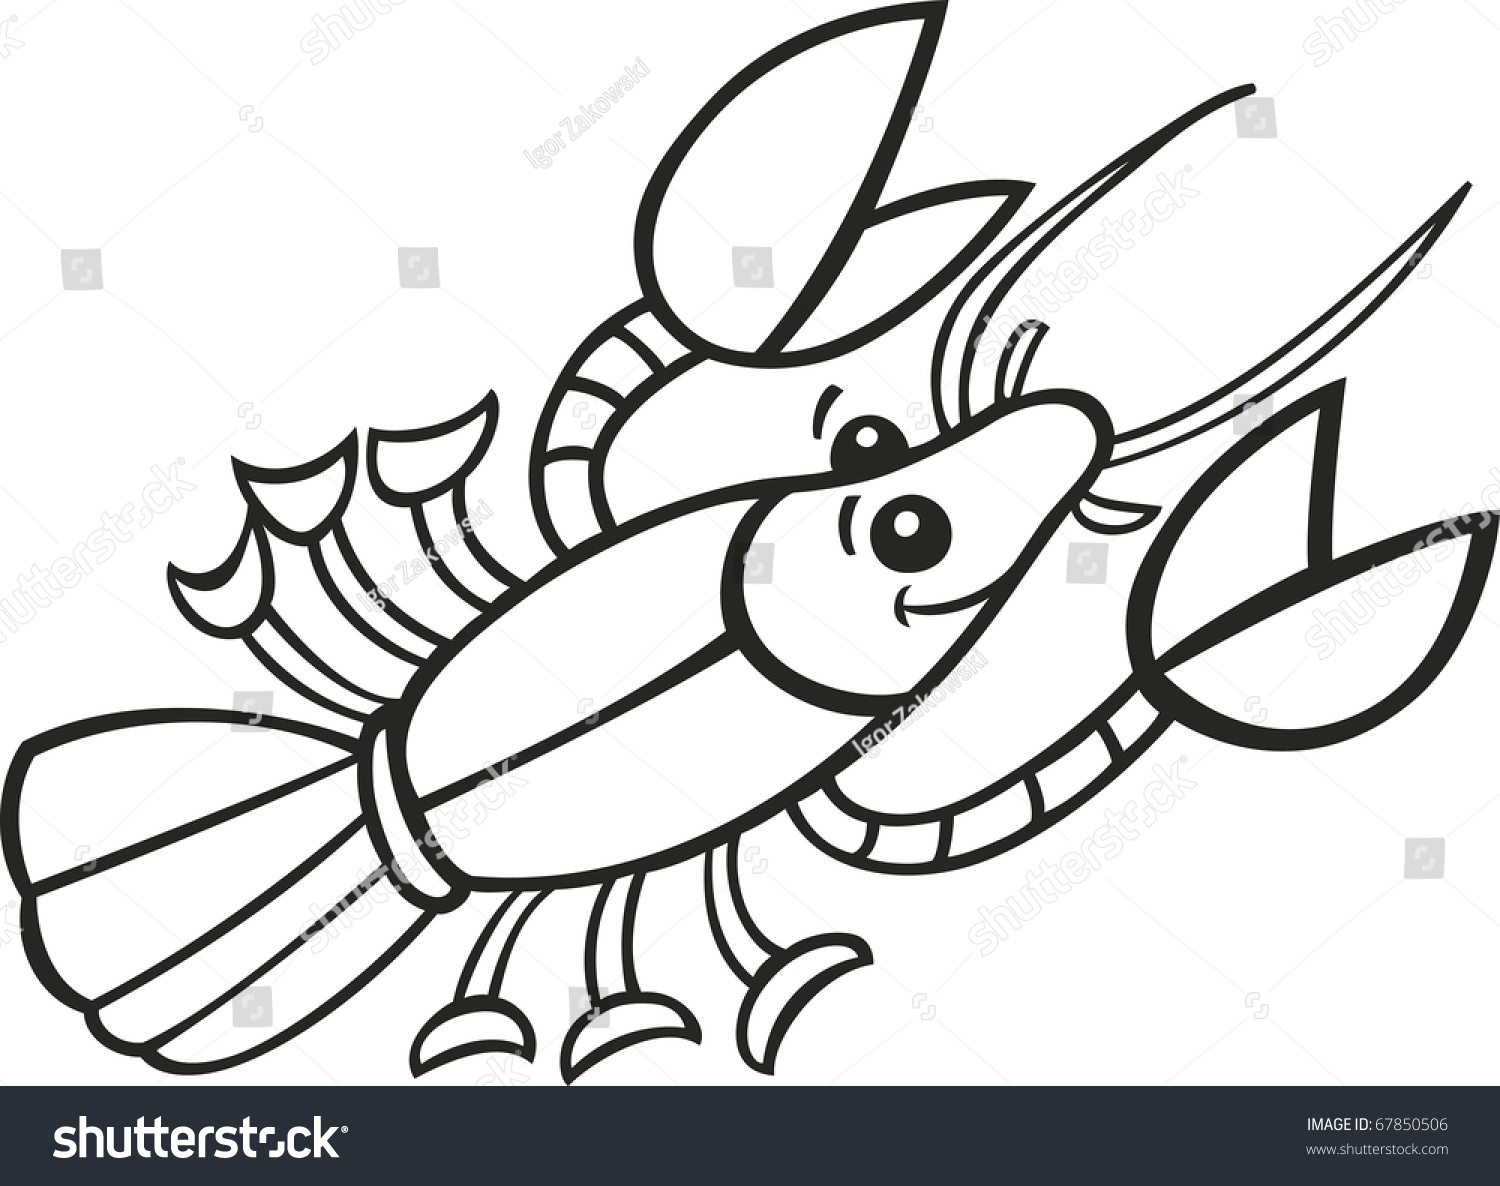 Illustration Crayfish Coloring Book Stock Vector